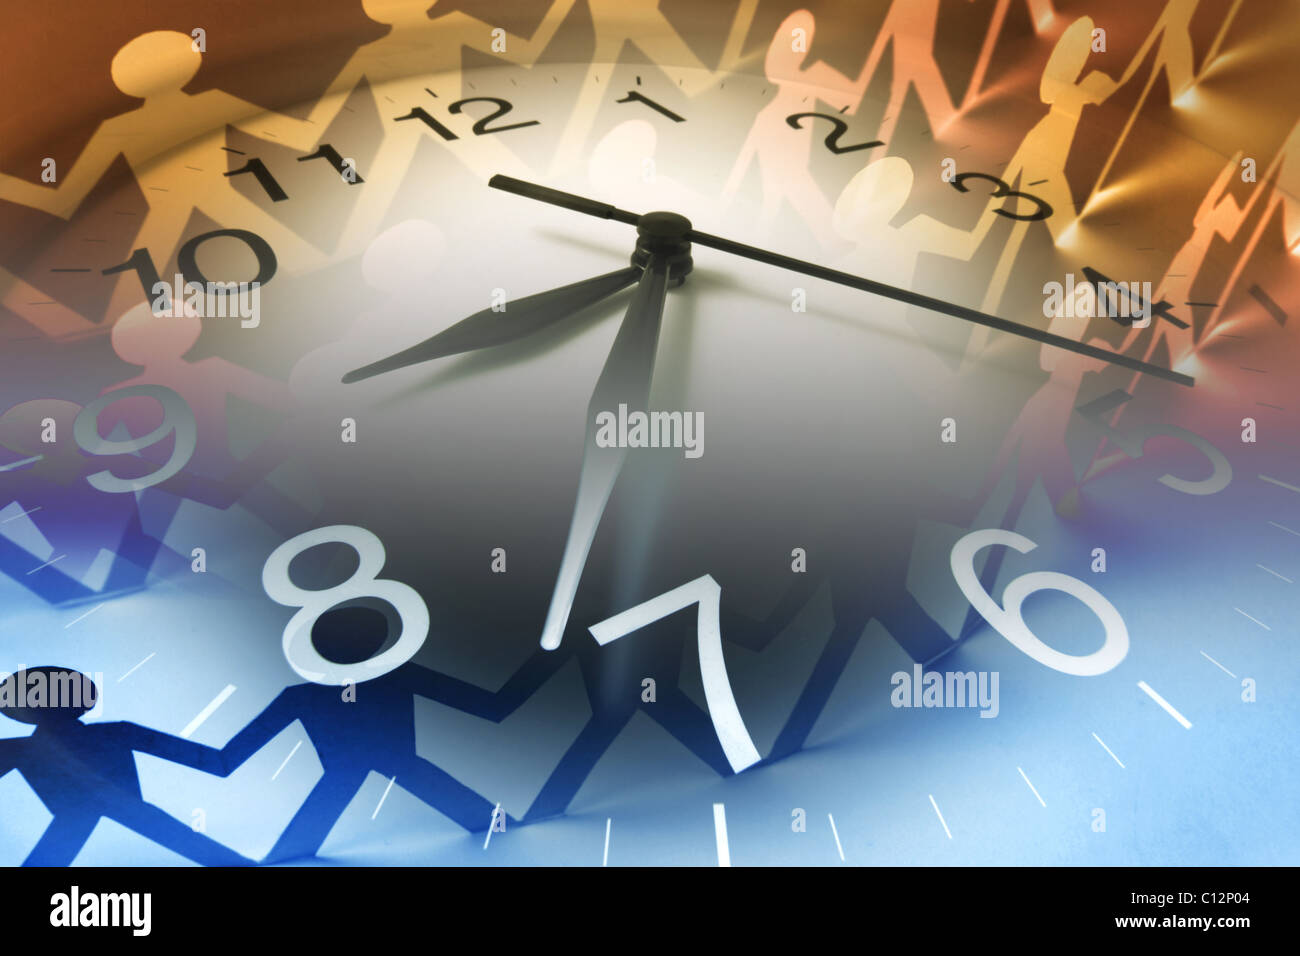 Paper Chain Dolls and Clock - Stock Image